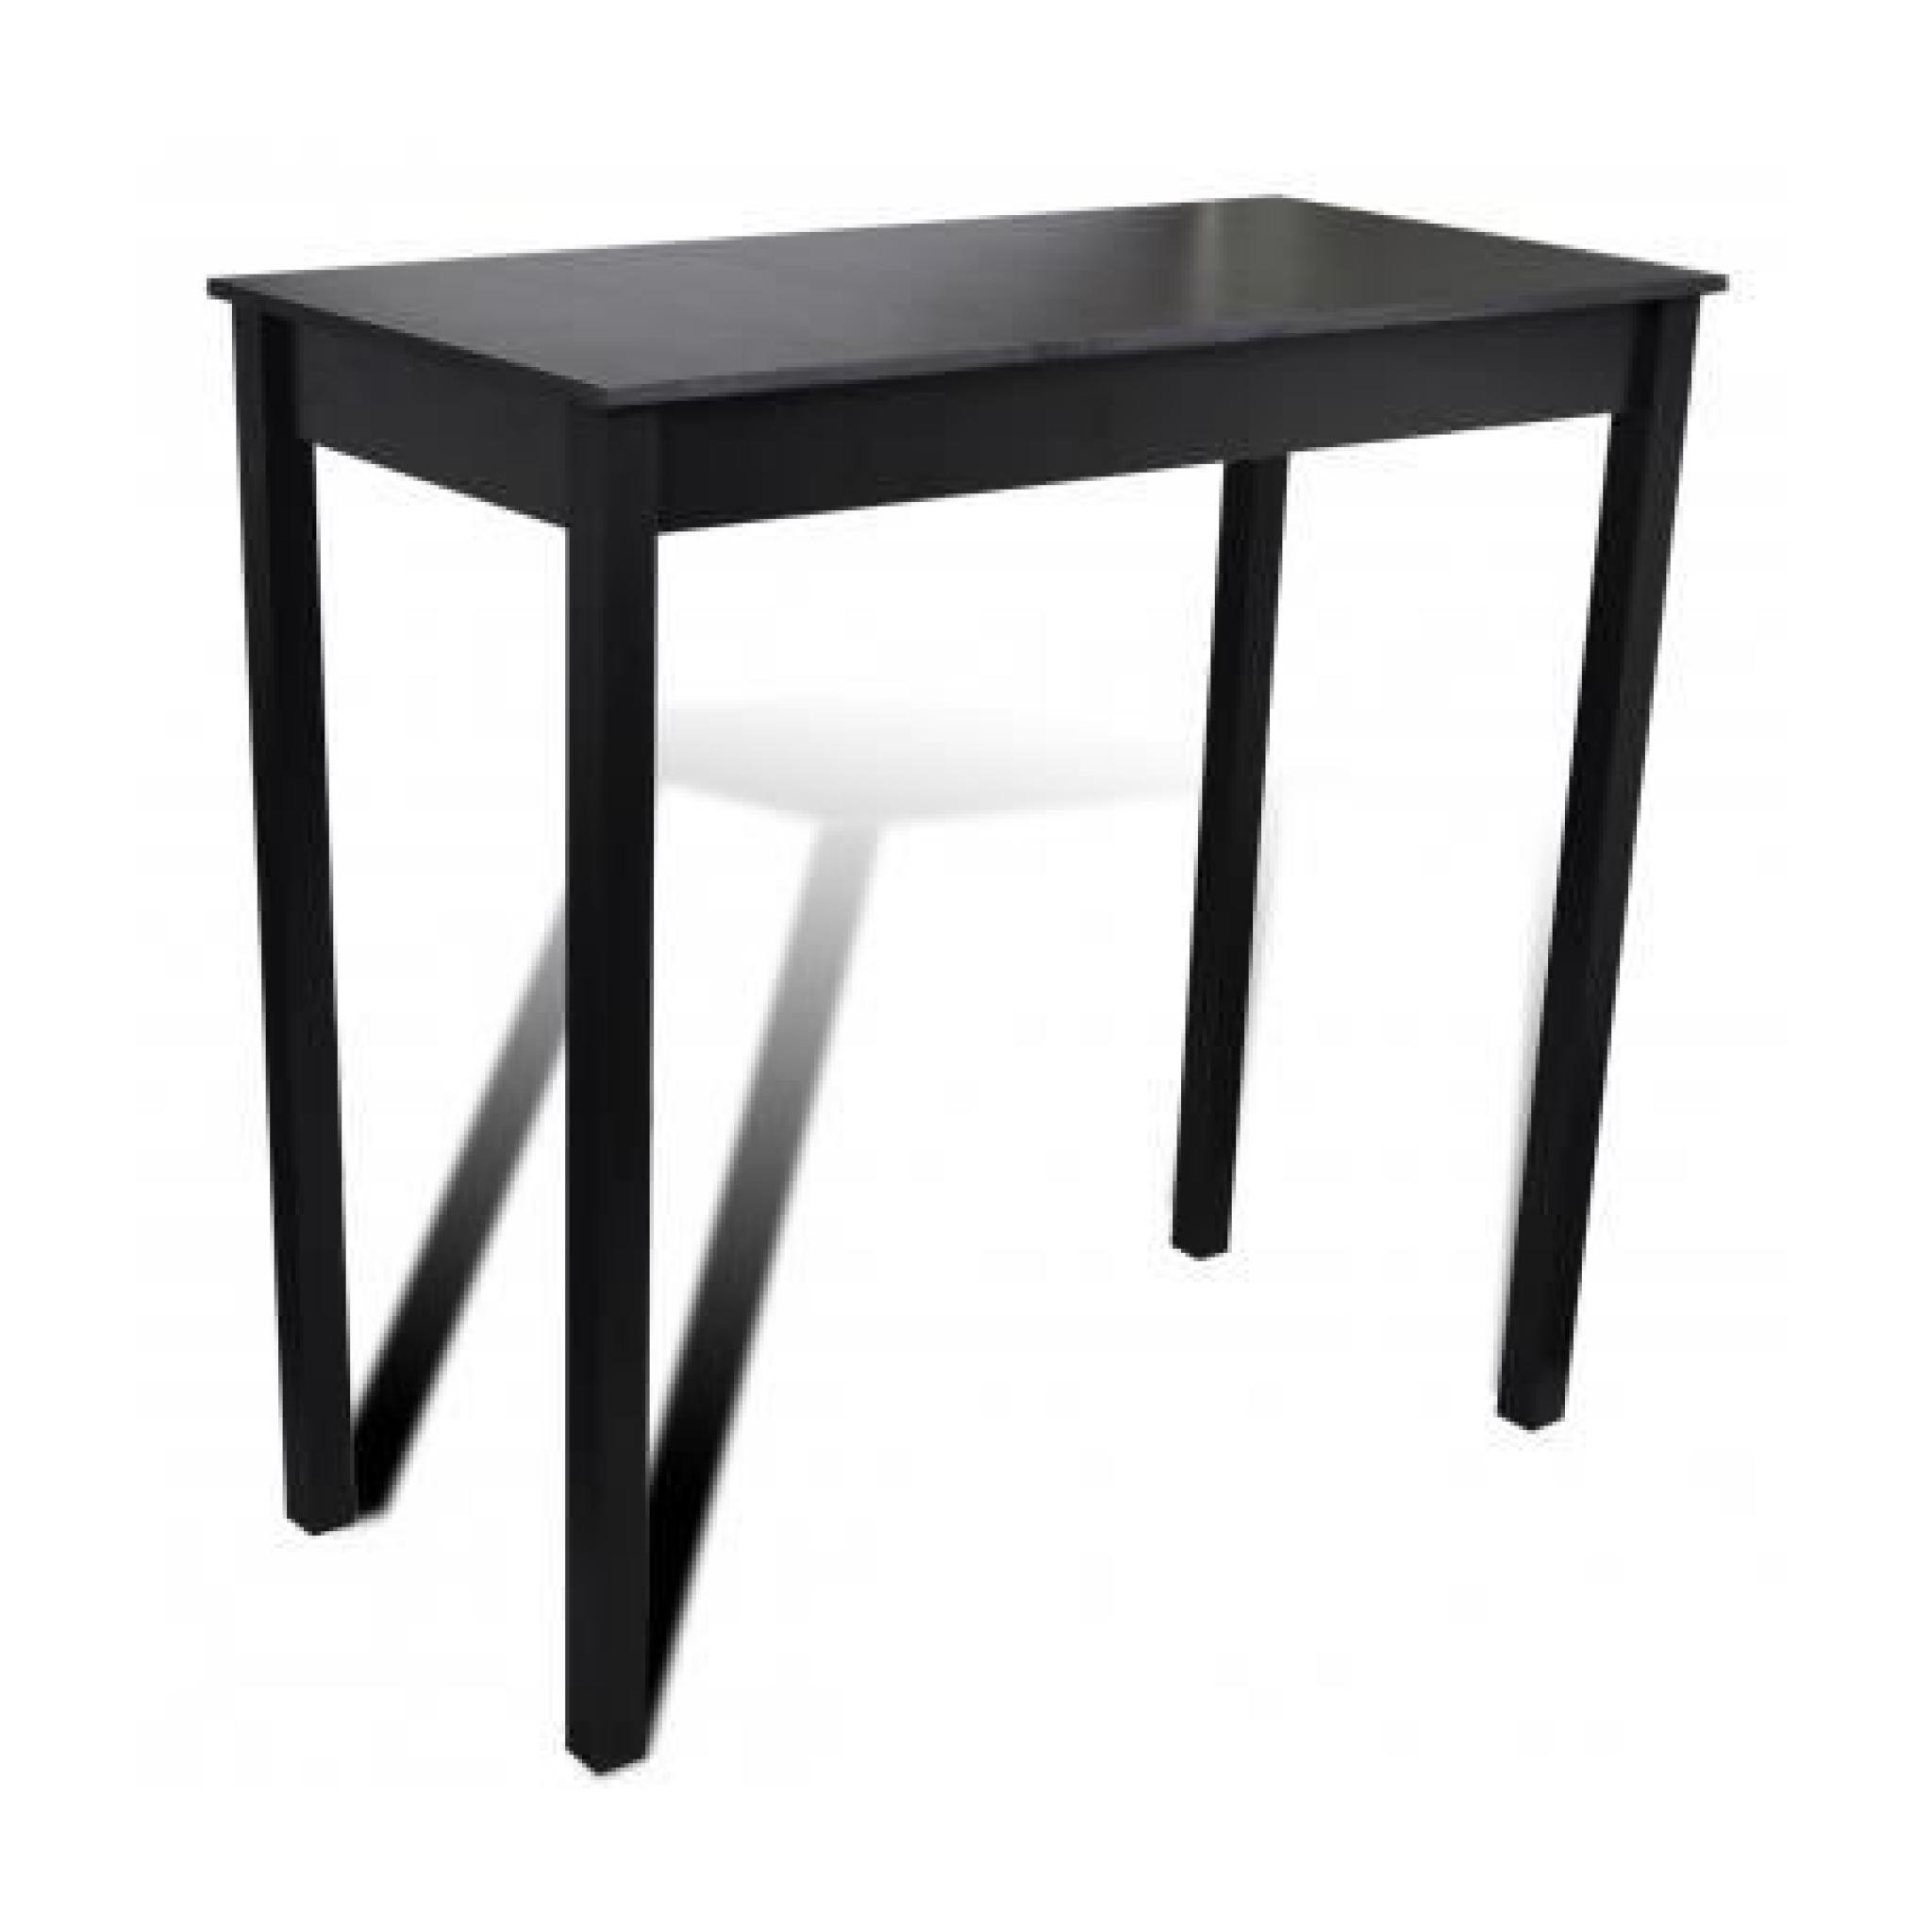 table bar mange debout 4 tabourets stylashop achat vente table salle a manger pas cher. Black Bedroom Furniture Sets. Home Design Ideas